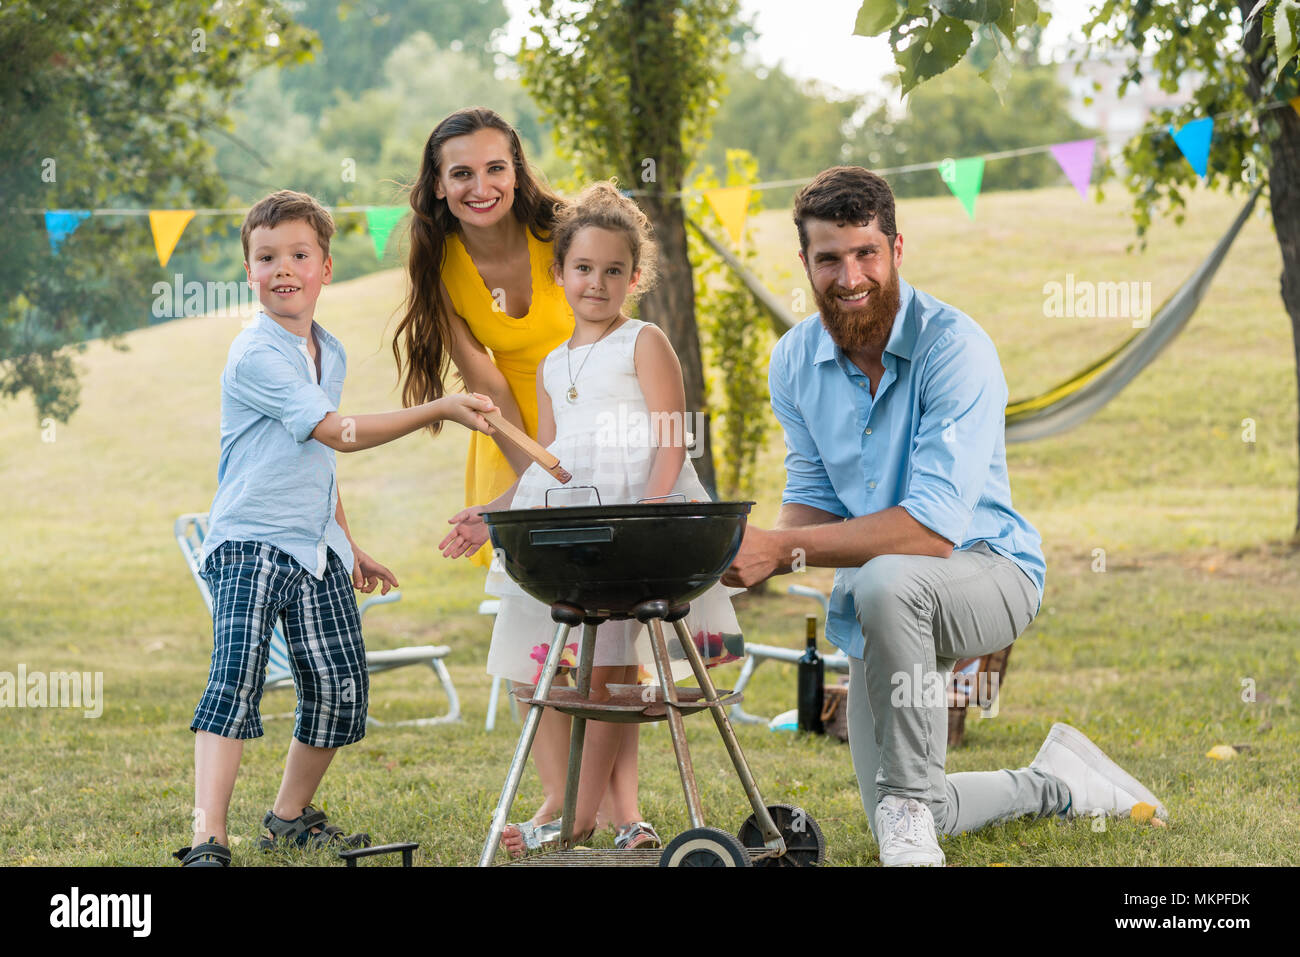 Portrait of happy family with children posing behind a barbecue  - Stock Image